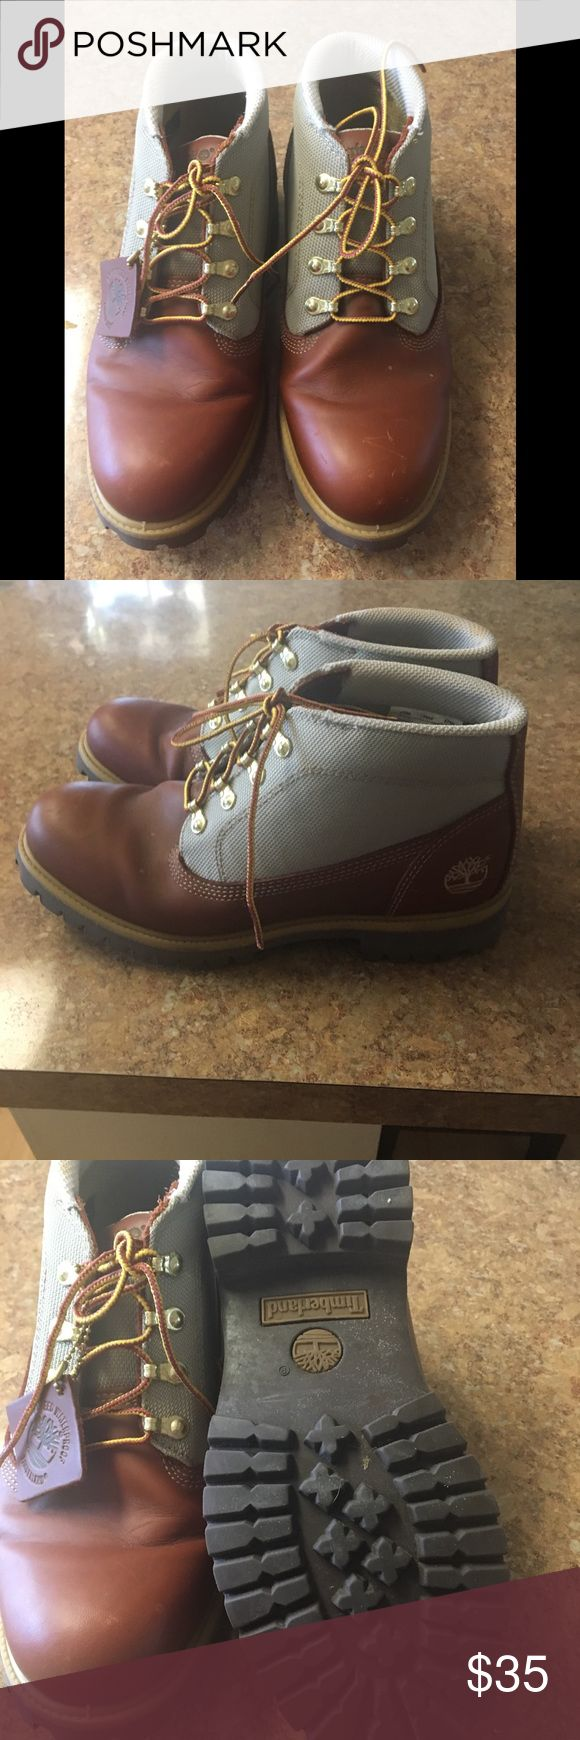 Men's Timberland ankle boots. Leather with canvas around ankle. Excellent condition as they were worn once. Timberland Shoes Boots